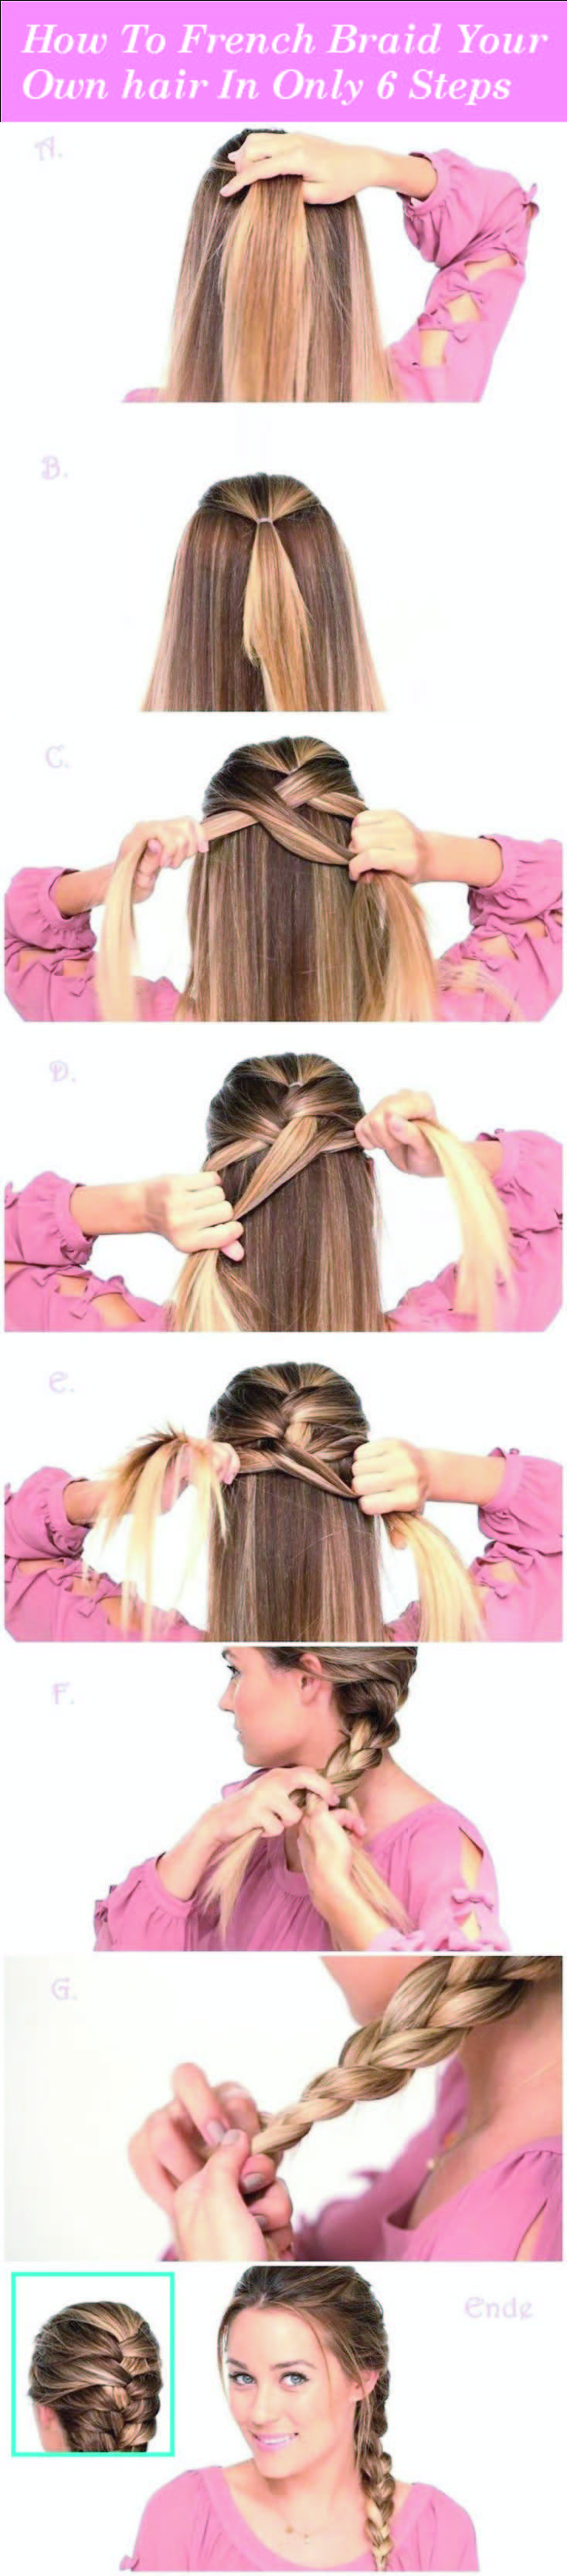 Fancy French Braids Want To Know How To French Braid Your Hair French Braids Are Very Easy To Do On Someone Else S Hair But Can Be Tricky W Hair Styles French